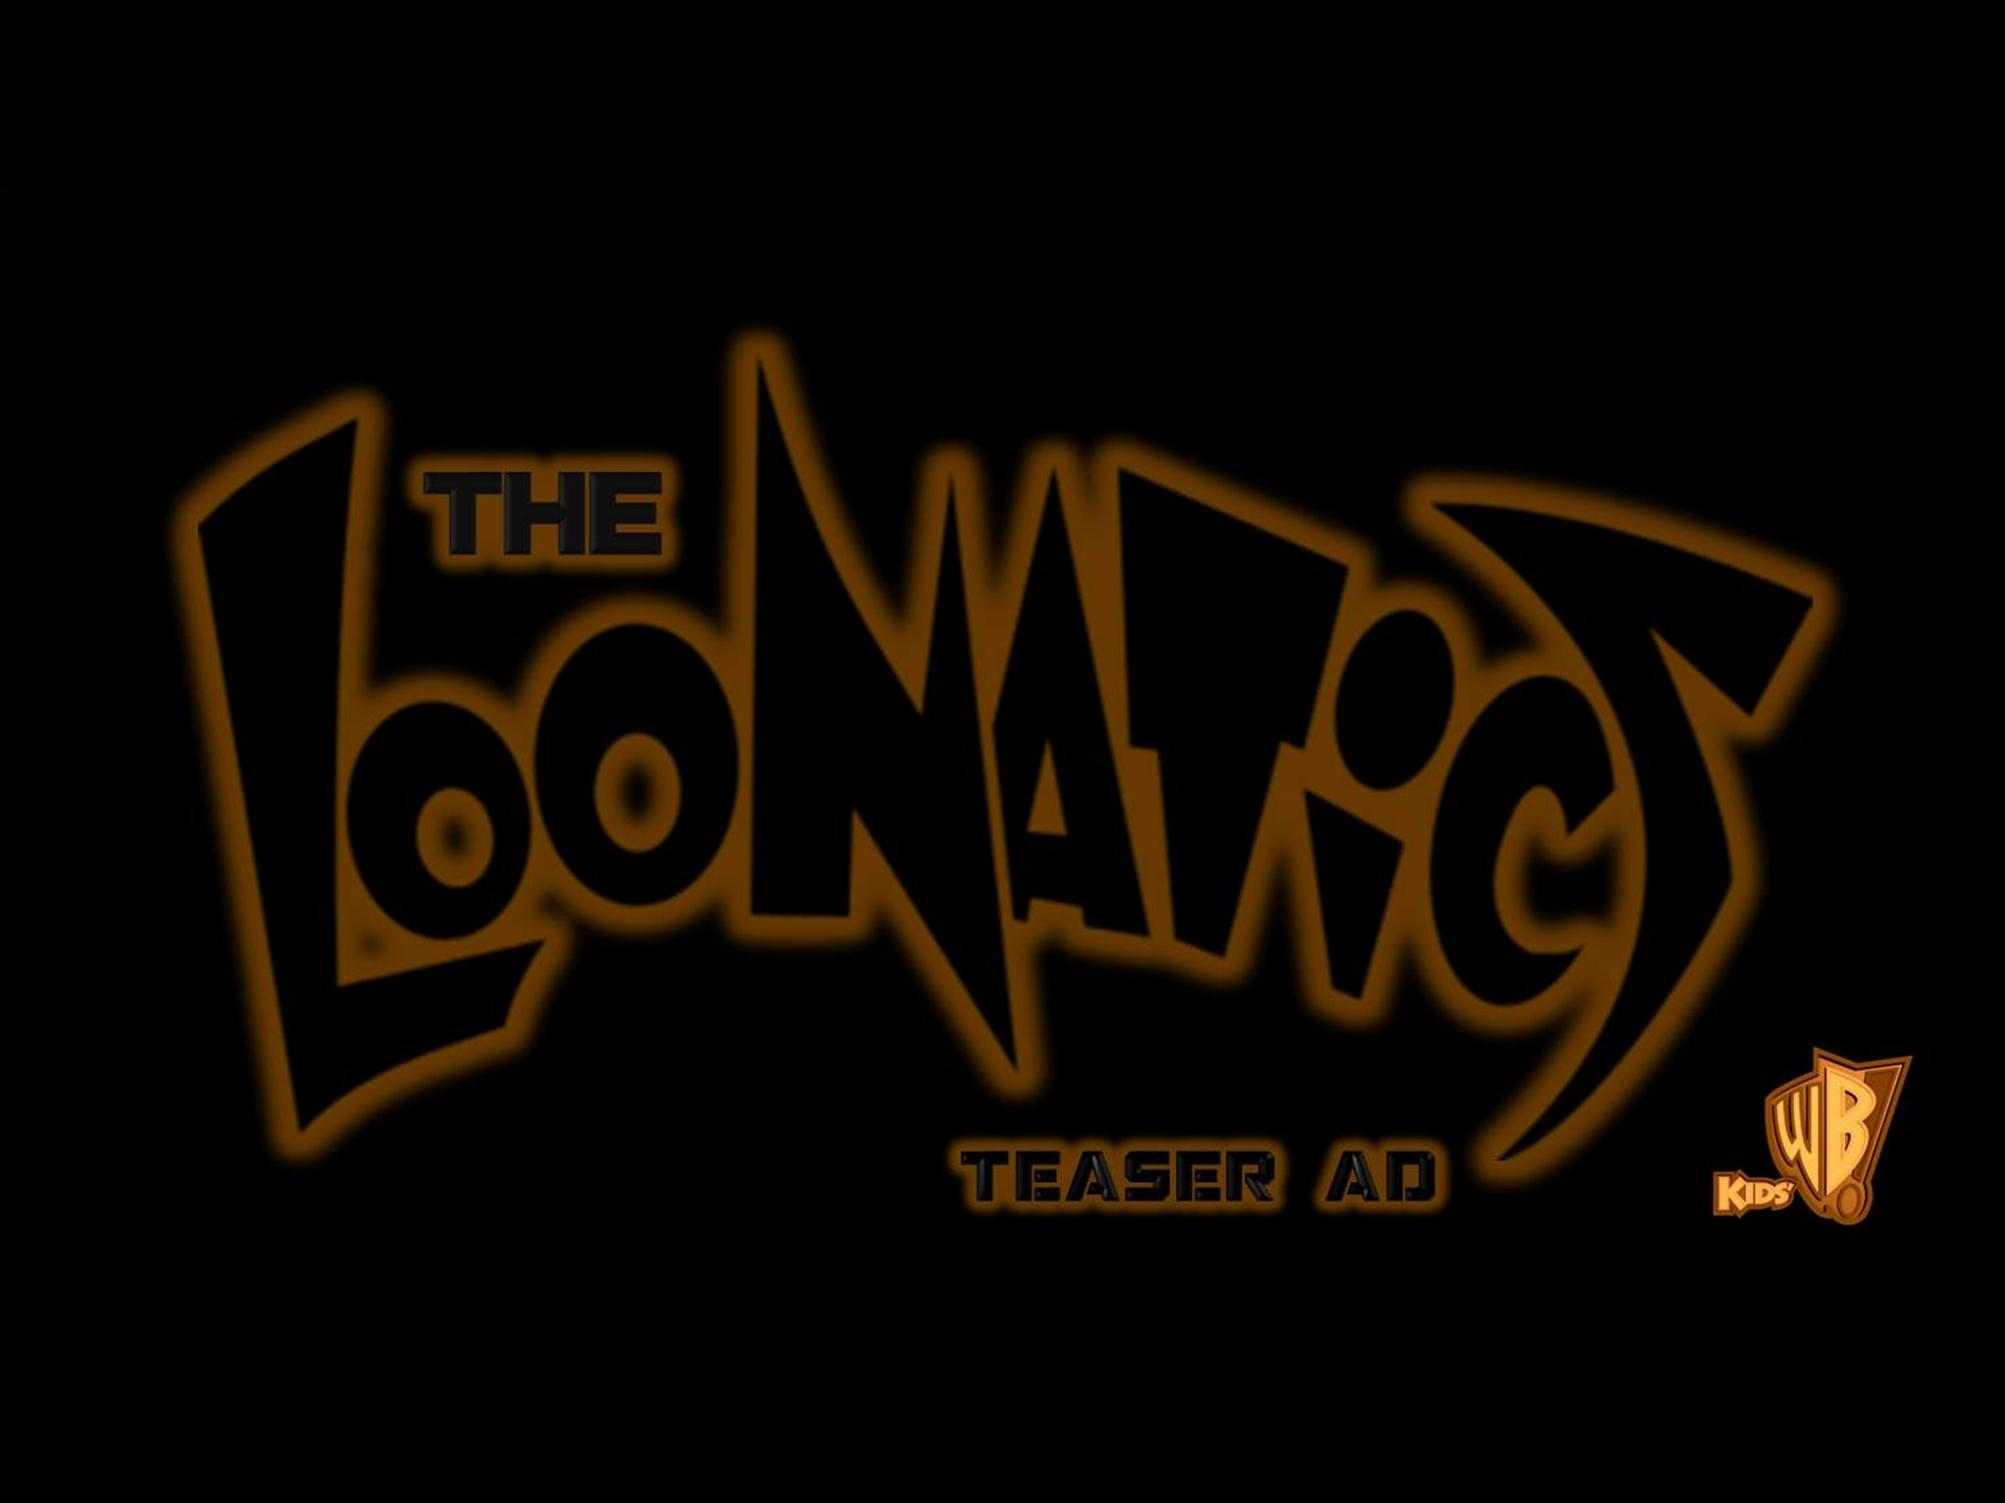 The Loonatics Teaser Ad